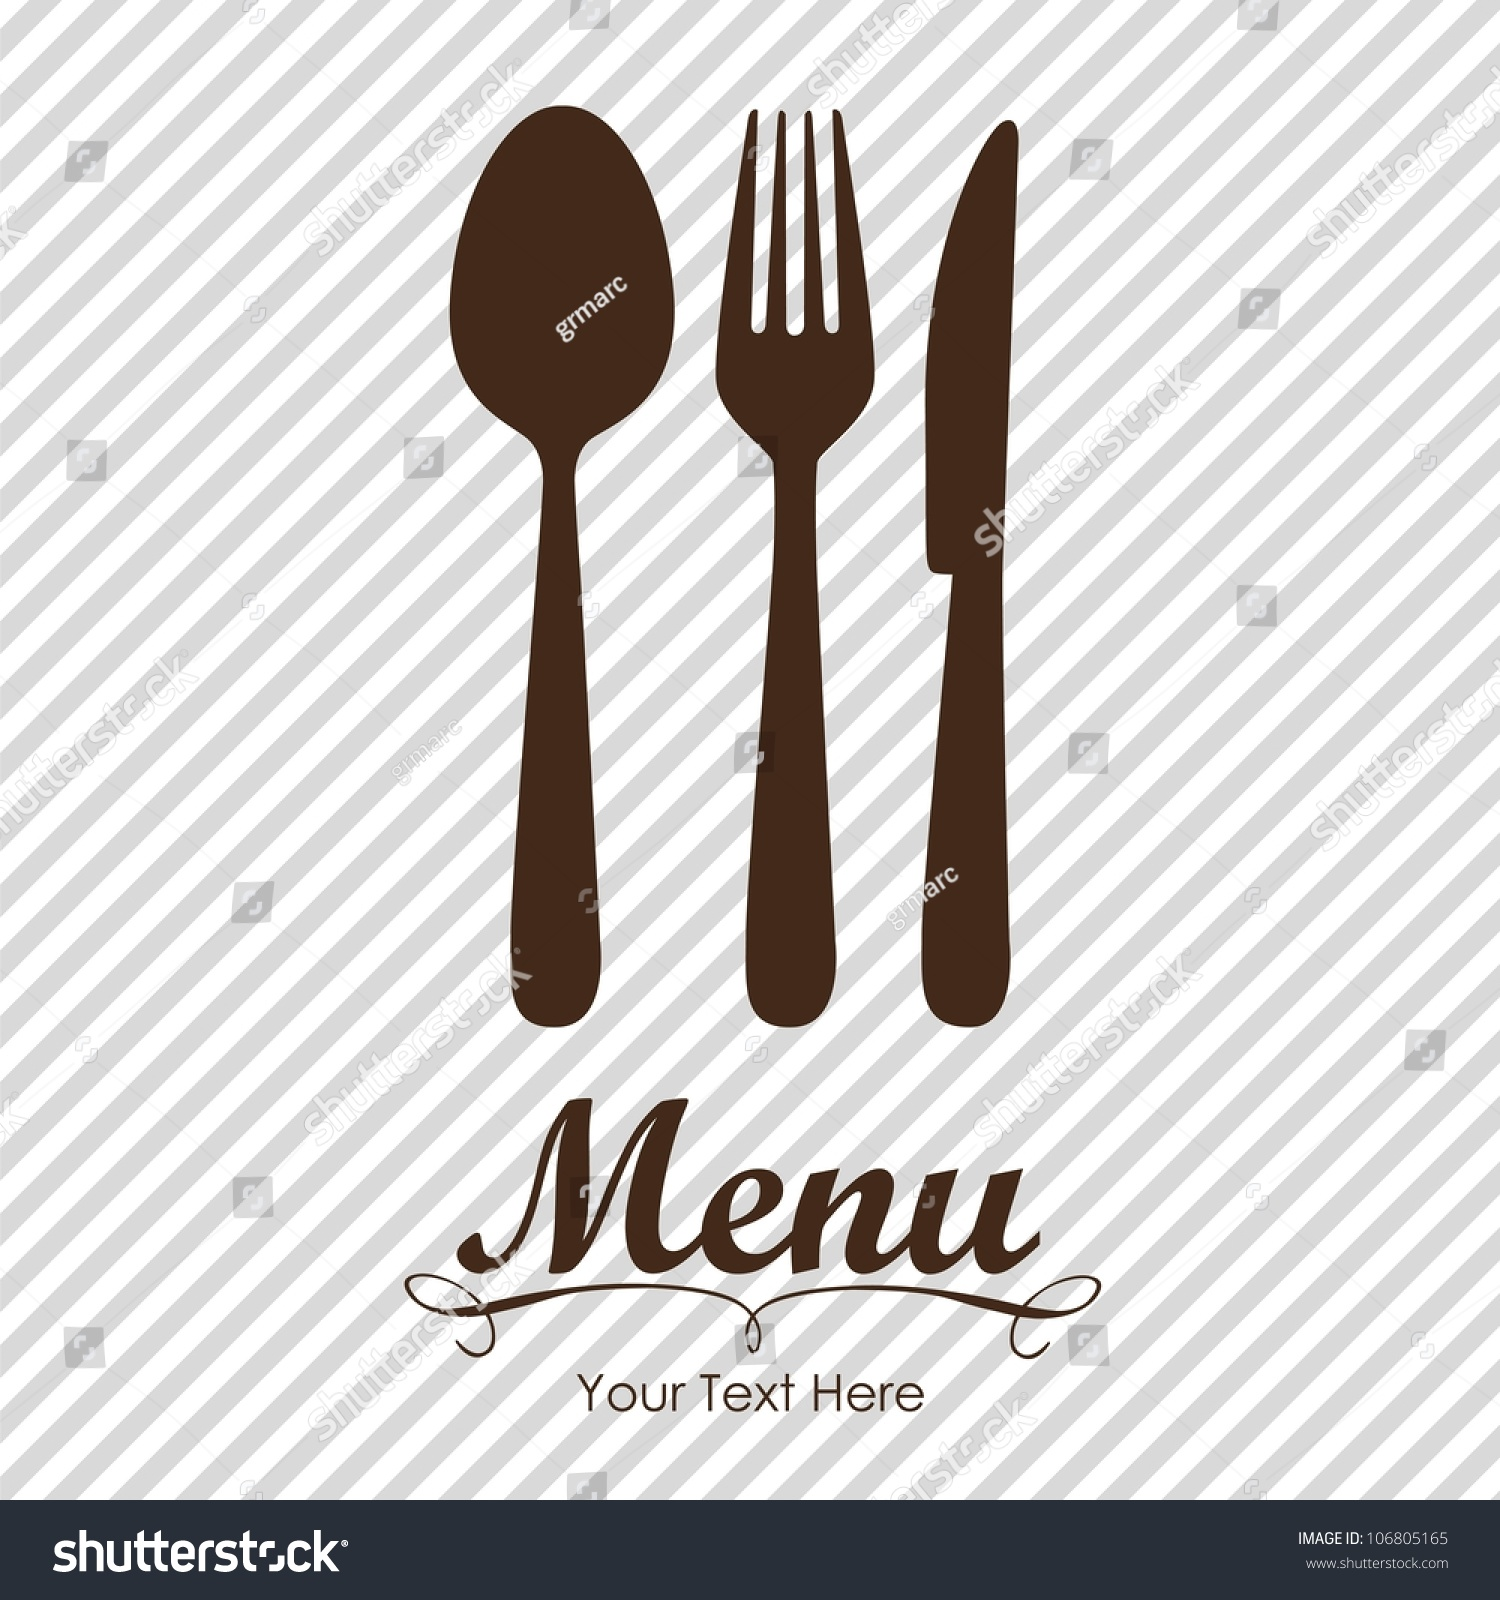 Image Gallery knife and fork menu